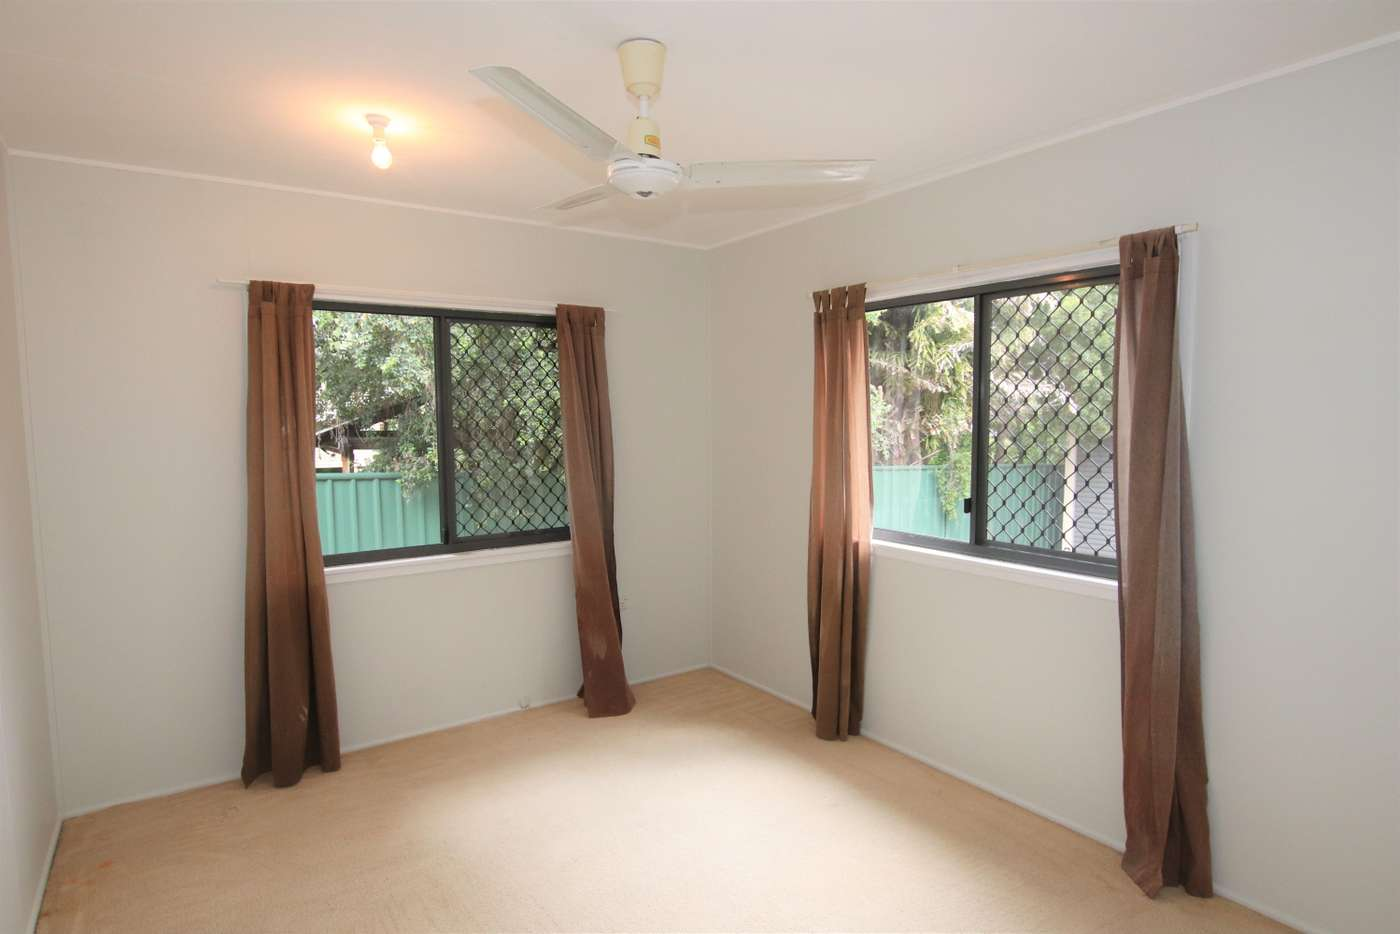 Seventh view of Homely house listing, 83 State Farm Road, Biloela QLD 4715